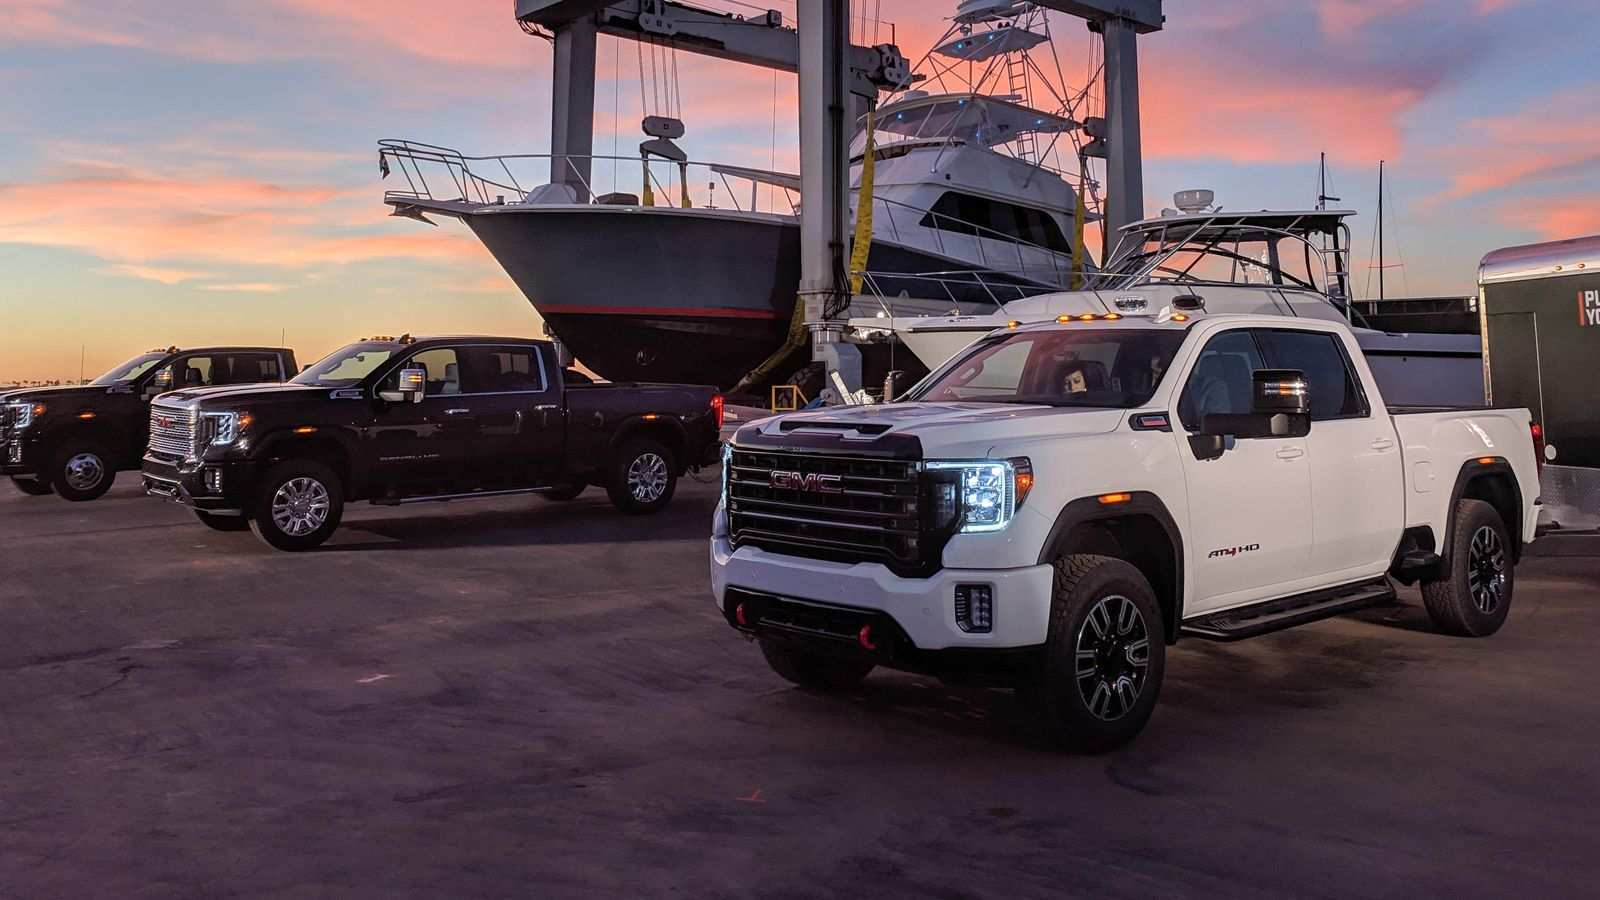 61 Best Review Best Gmc 2019 Sierra 2500 Picture Release Date And Review Exterior and Interior with Best Gmc 2019 Sierra 2500 Picture Release Date And Review